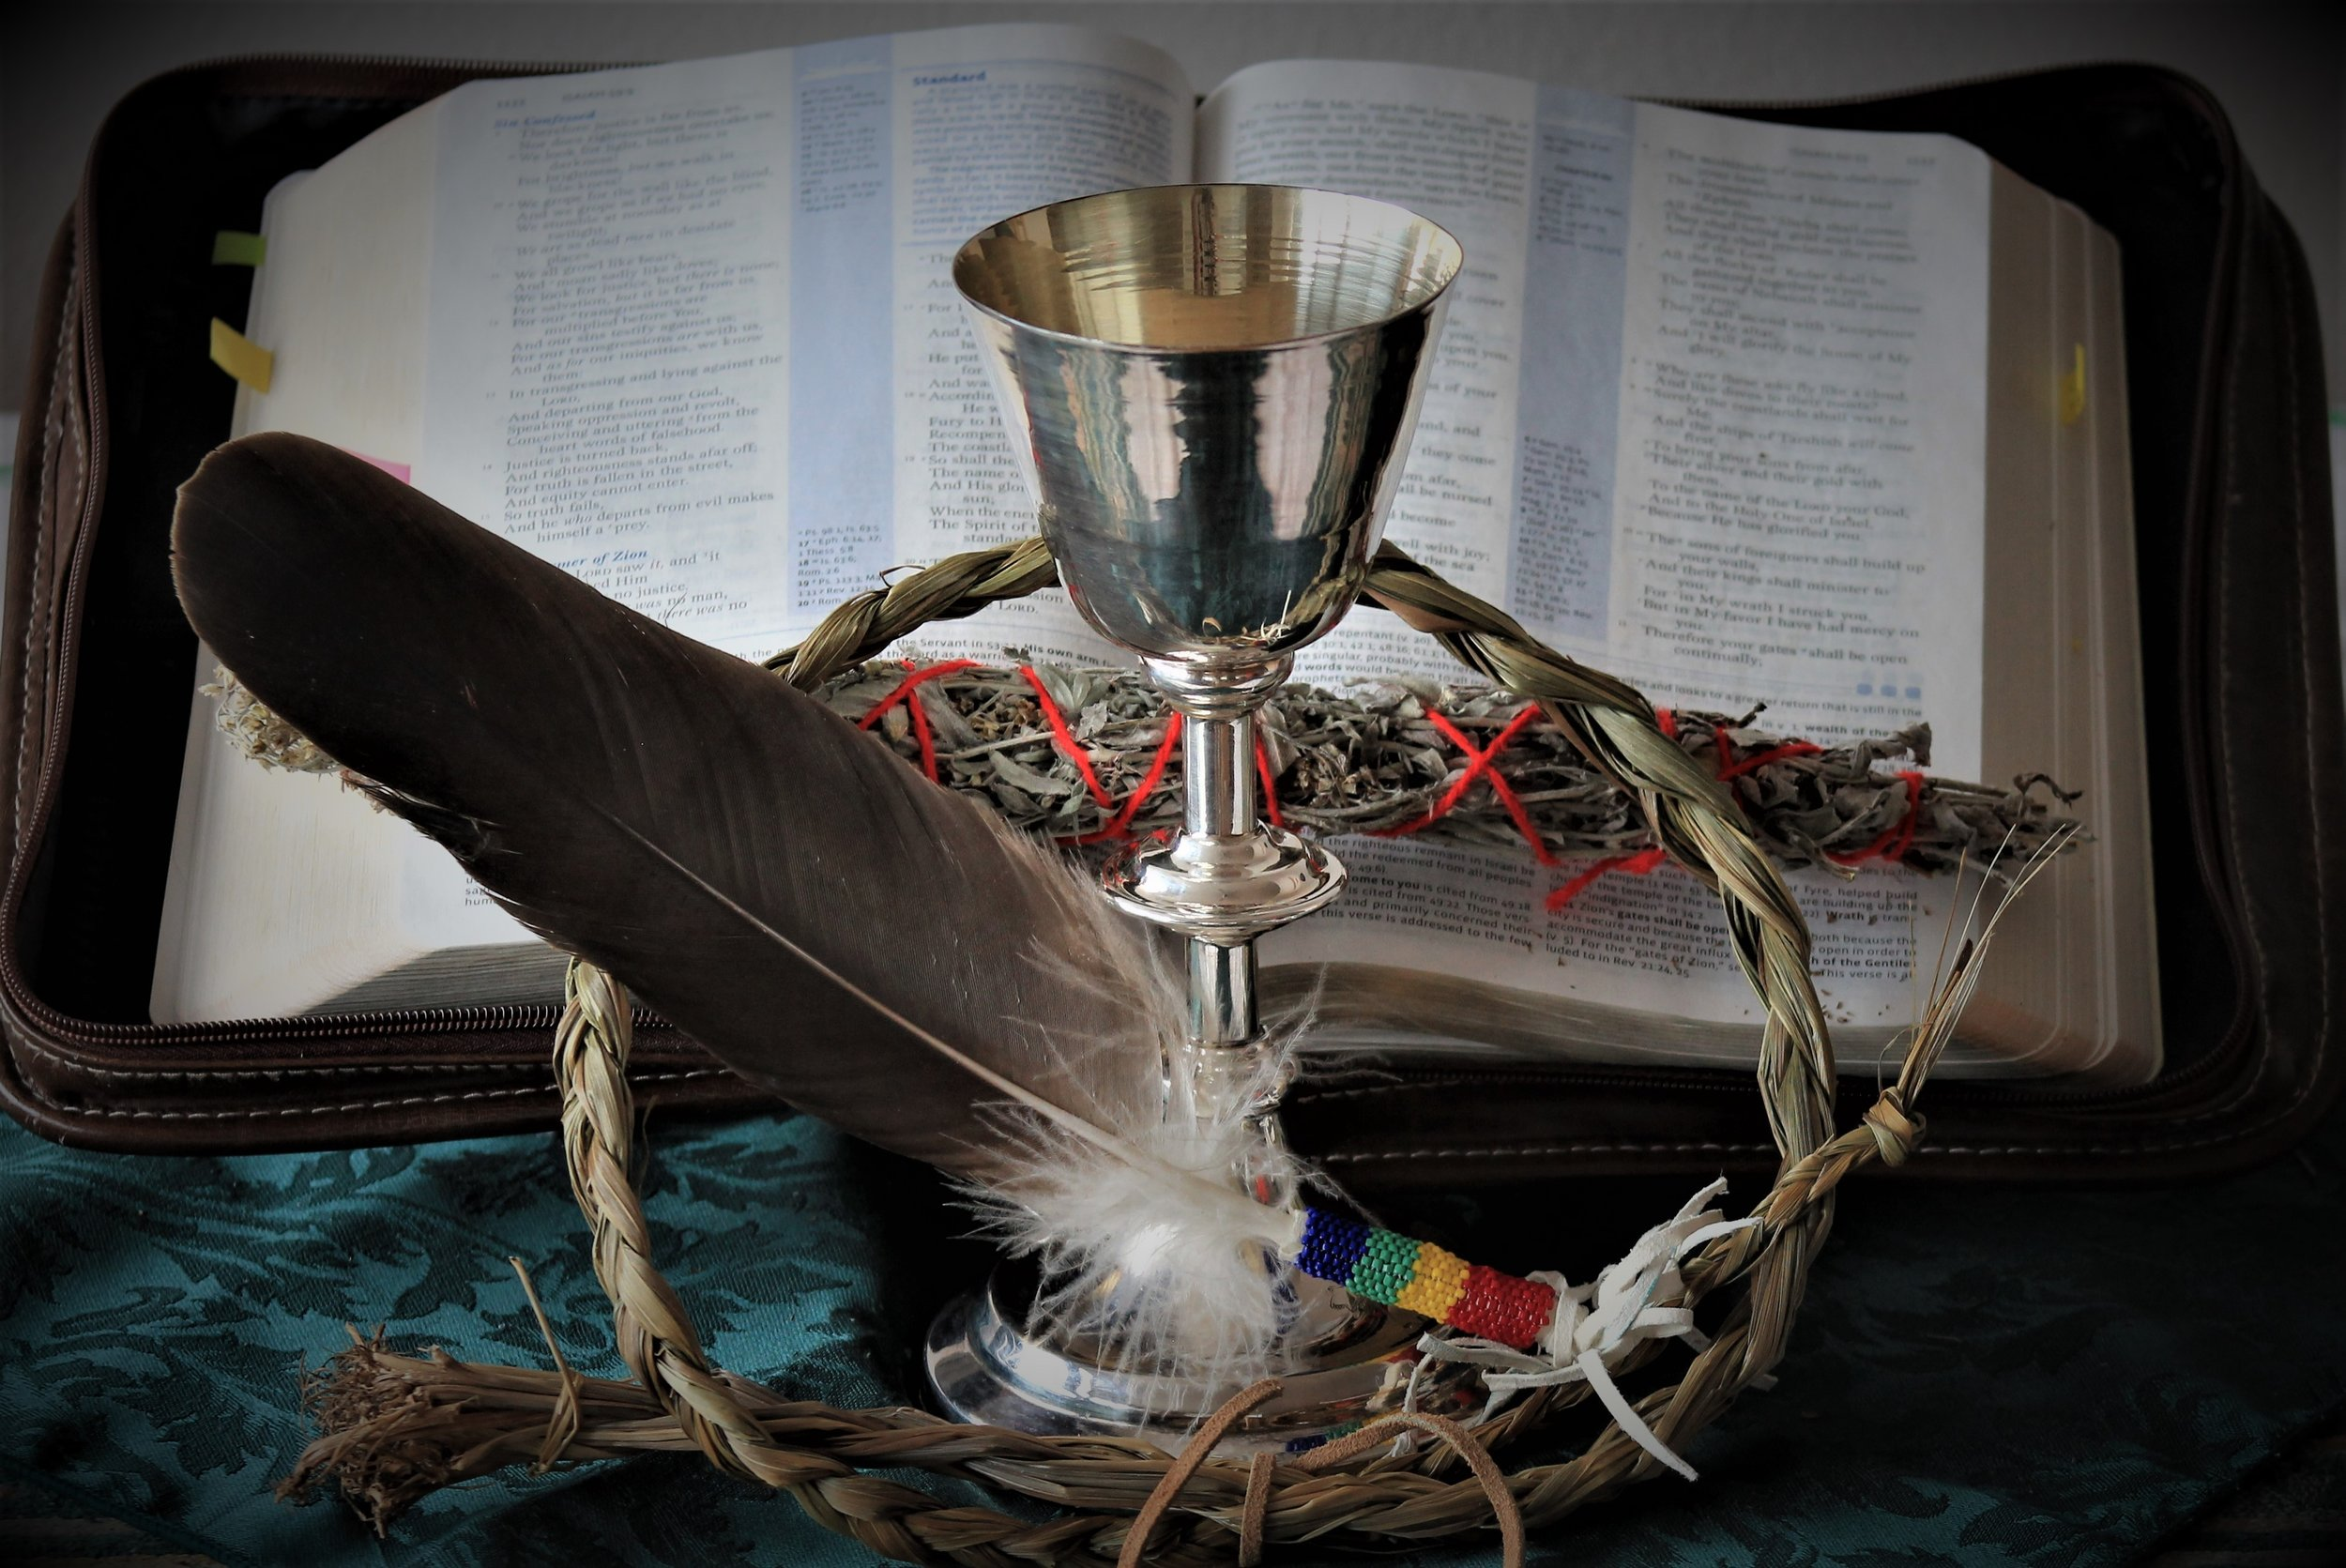 Psalm 66:19 - 67:1 - But truly God has listened; he has given heed to the words of my prayer. Blessed be God, because he has not rejected my prayer or removed his steadfast love from me.May God be gracious to us and bless us and make his face to shine upon us.Chalice & Eagle Feather photograph provided by Tracy Harper